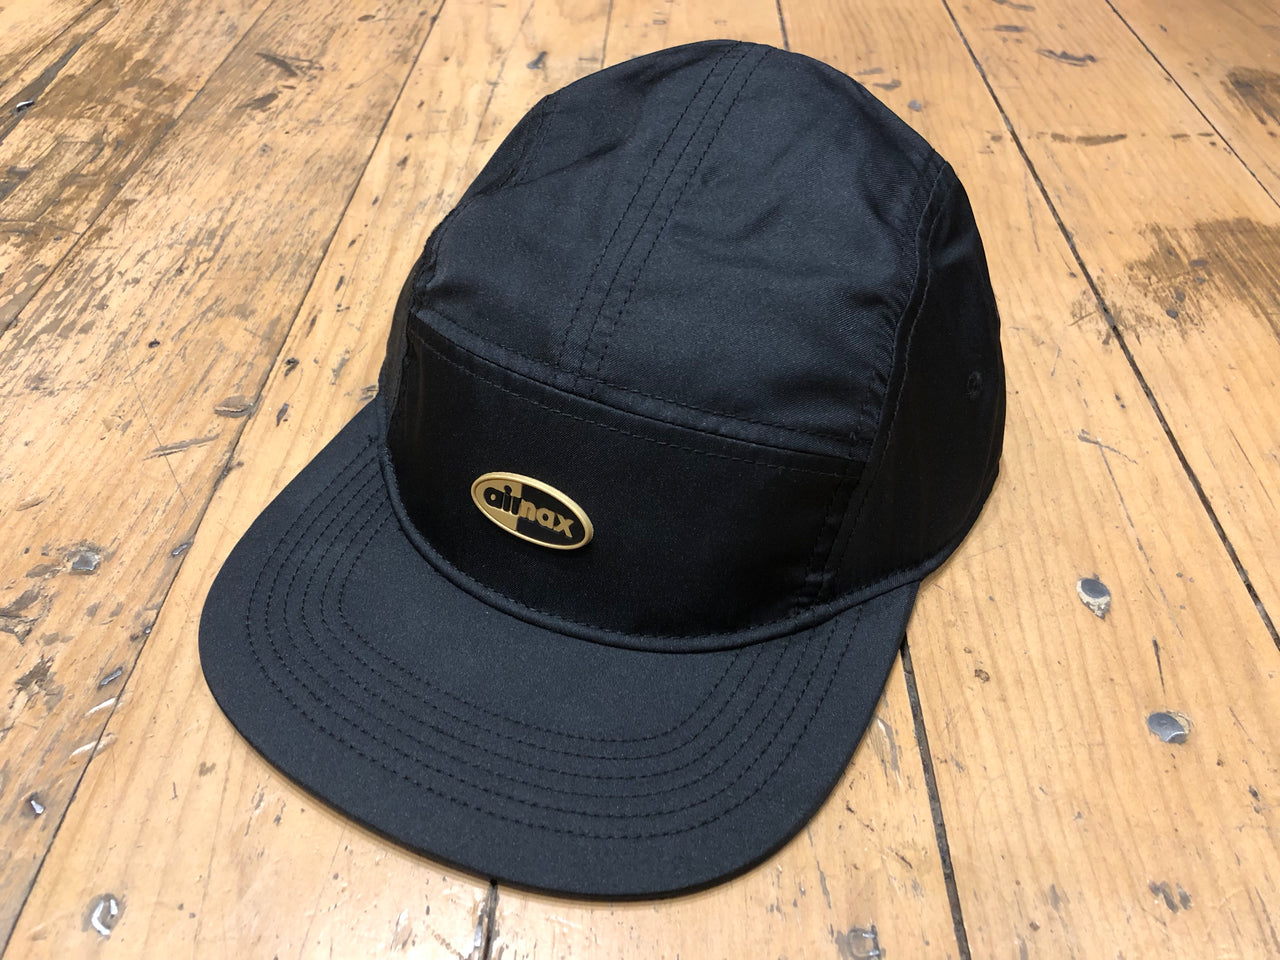 U NSW Arobill AW84 Cap Air Max - Black/Gold